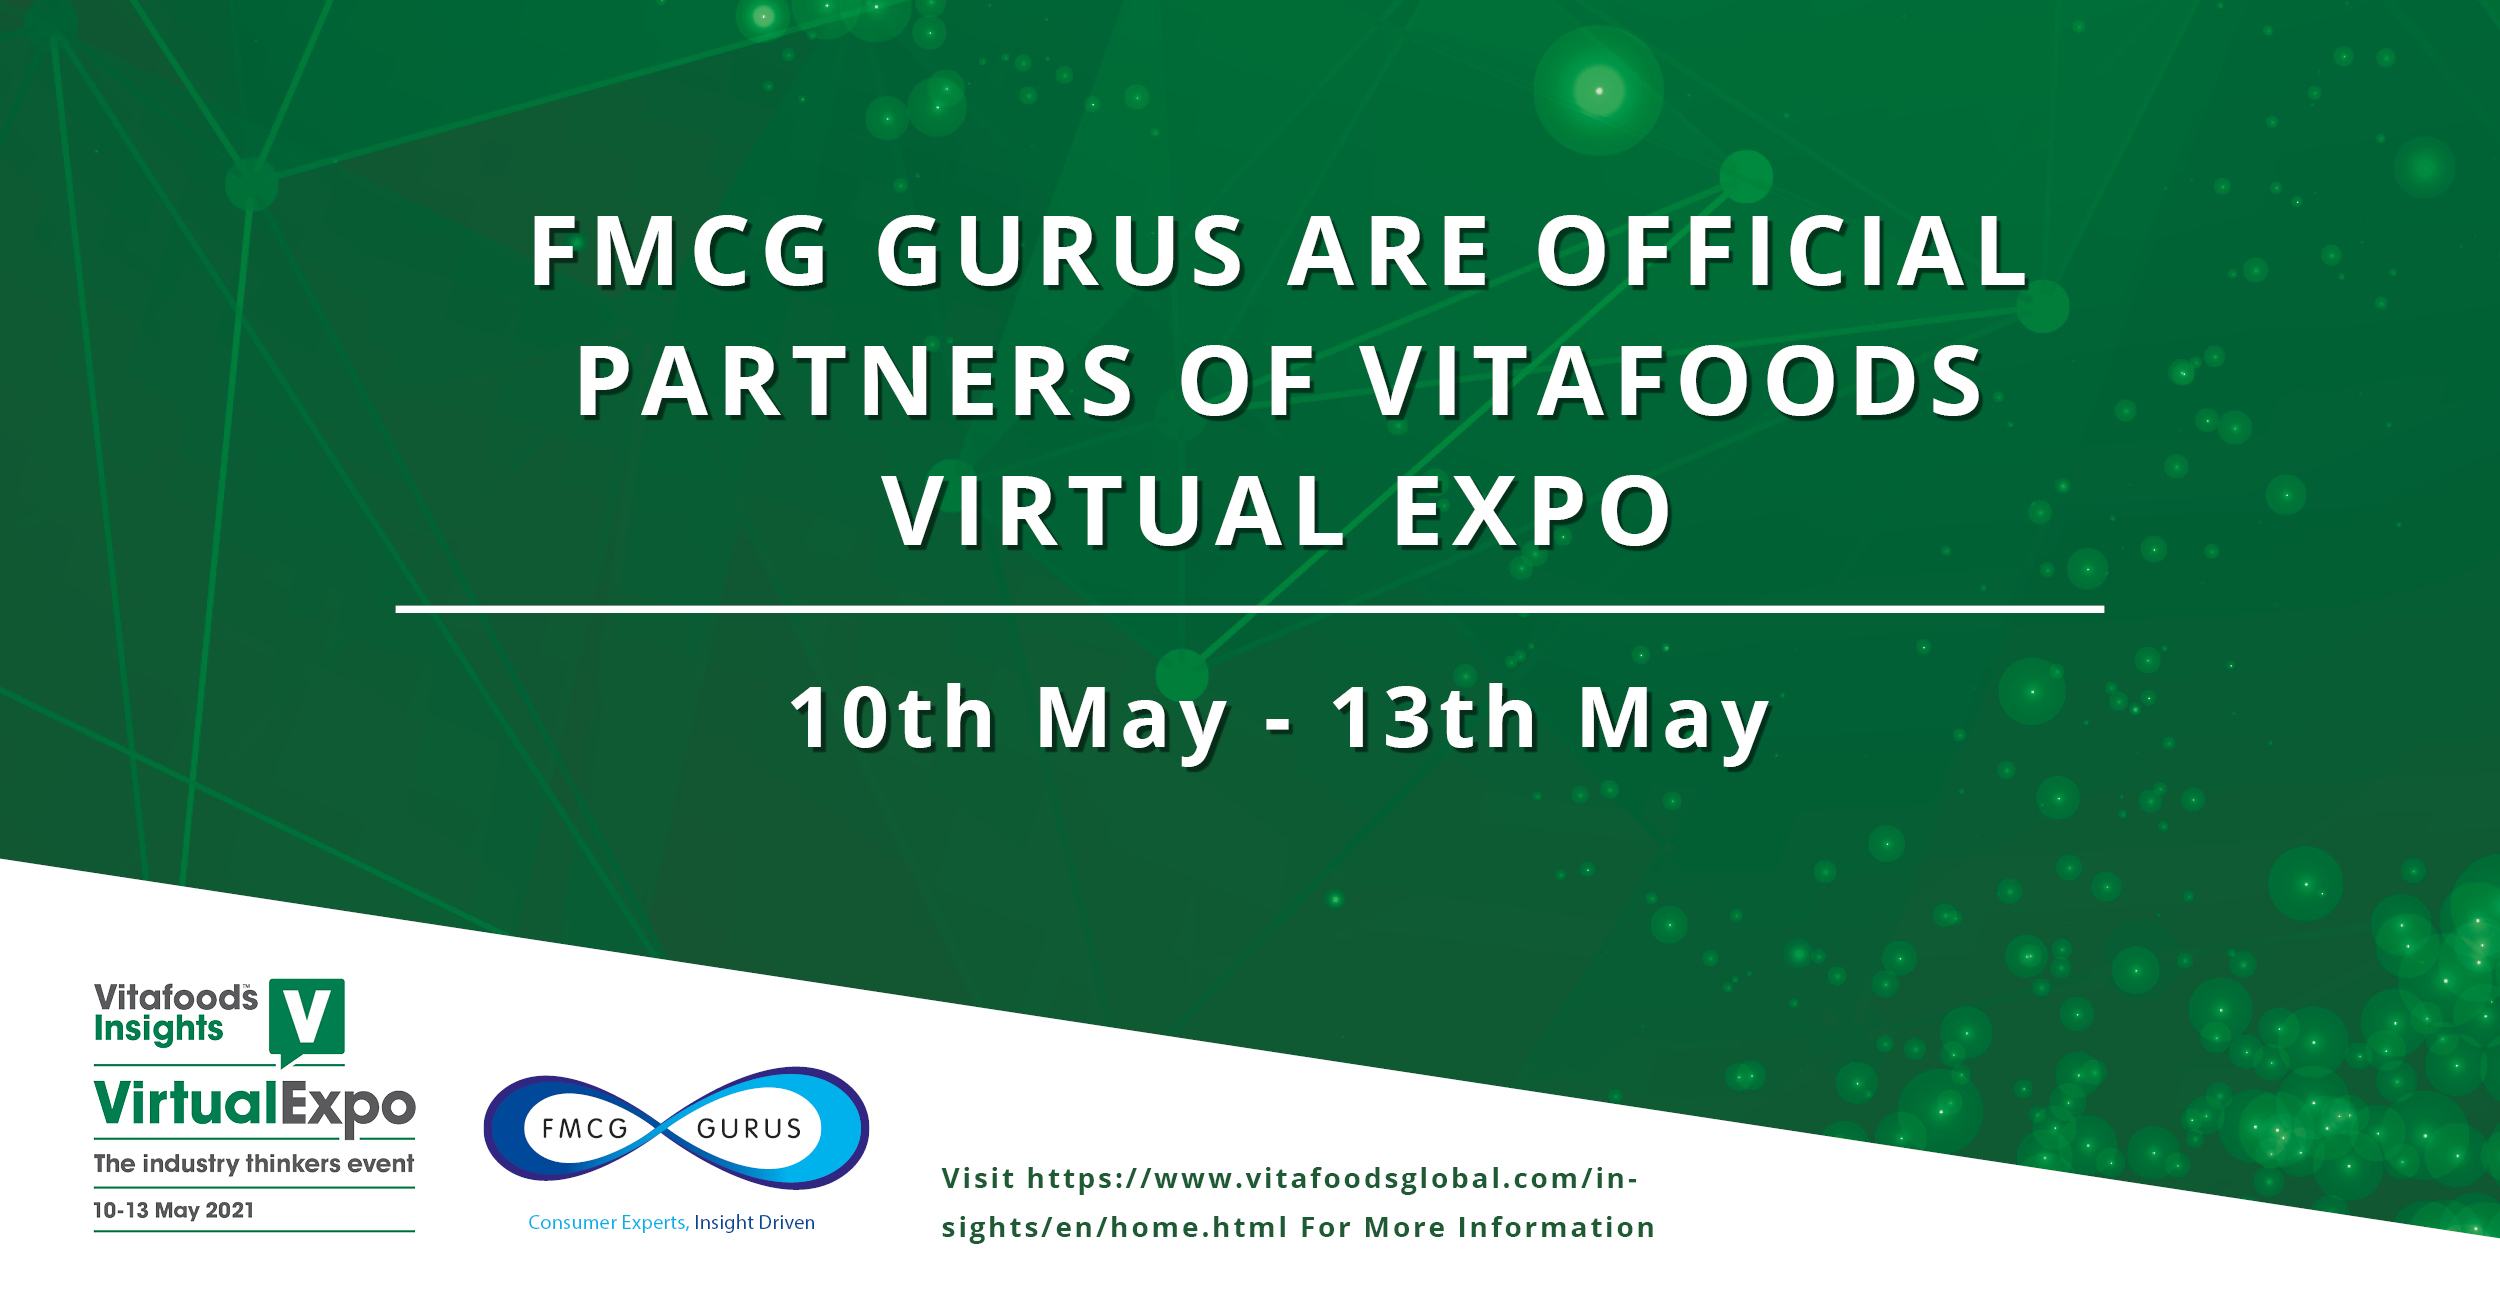 FMCG Gurus are Official Partners of Vitafoods Virtual Expo.